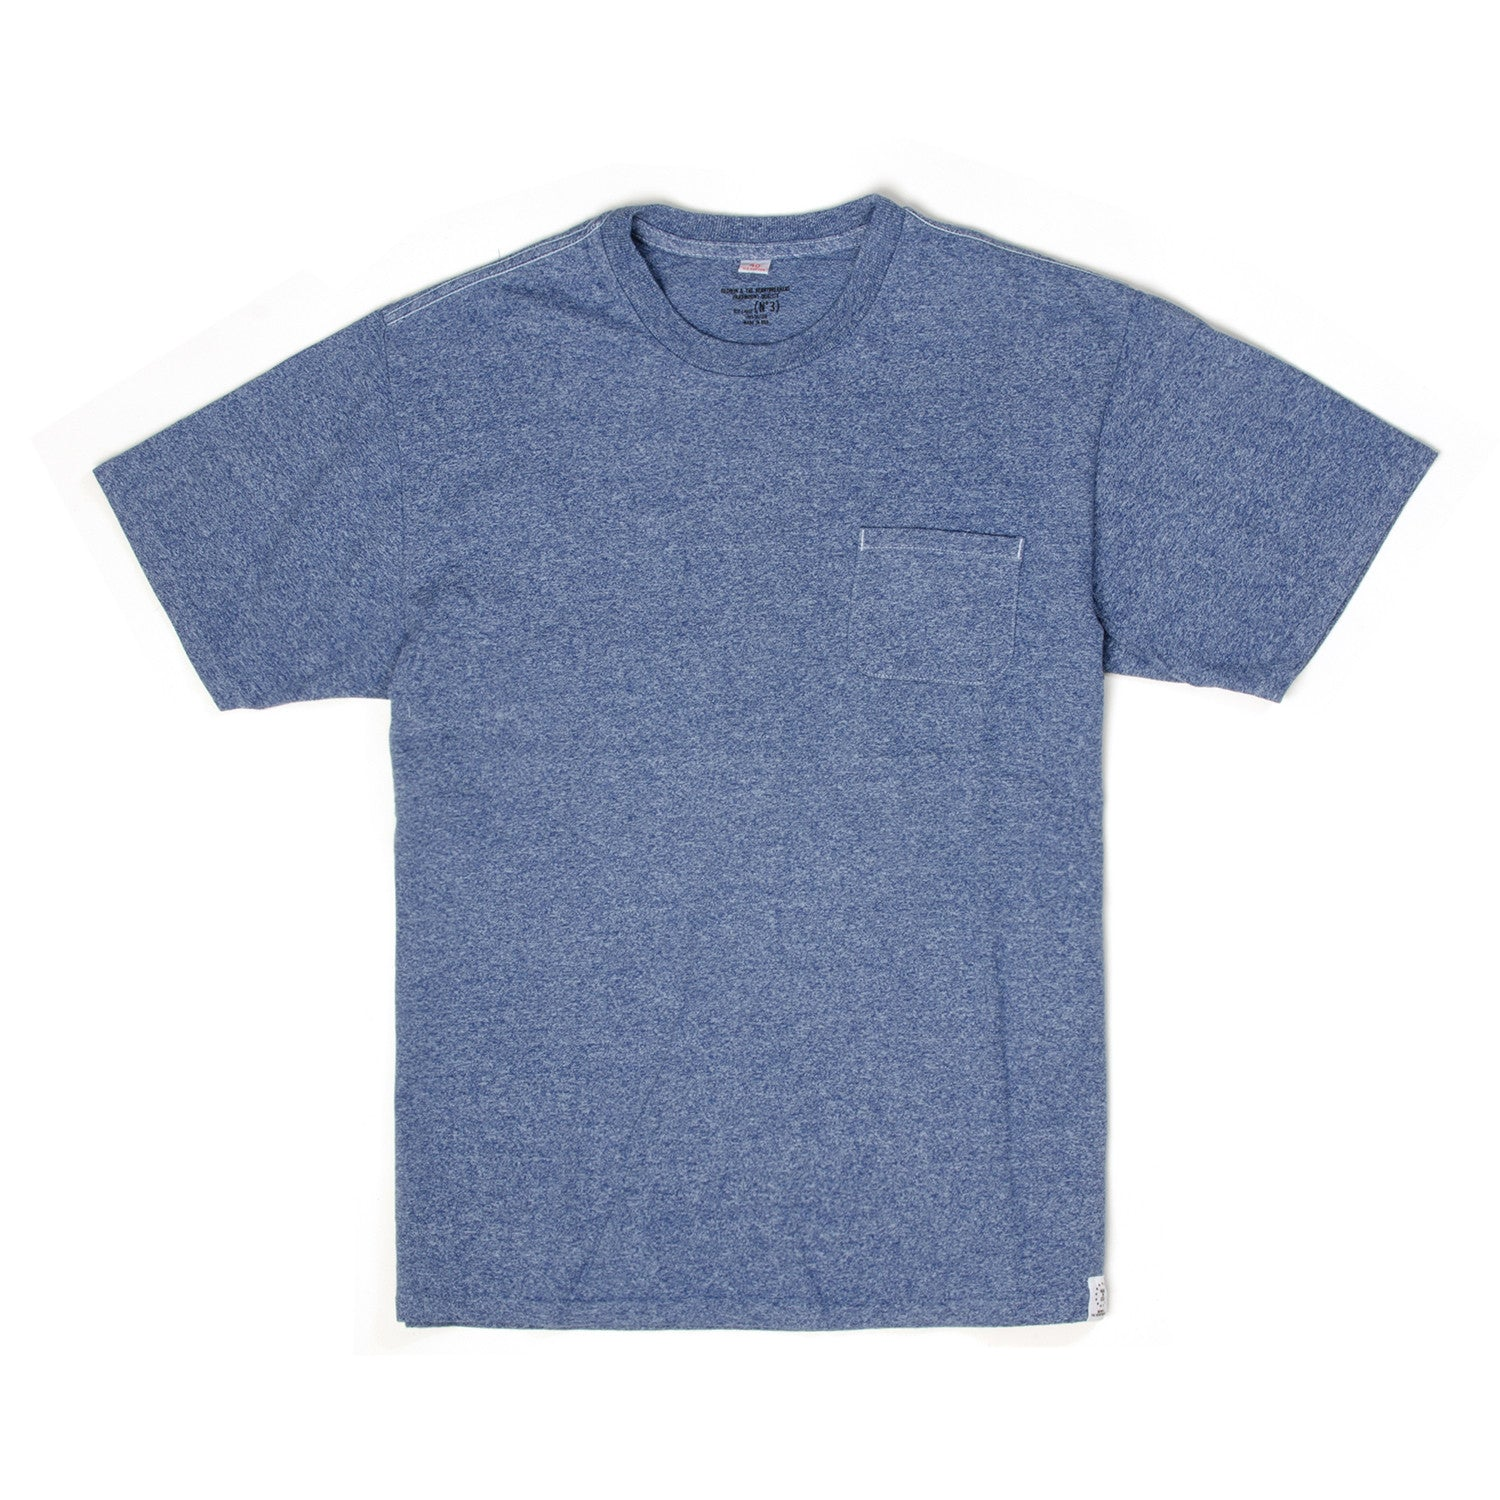 Bedwin 'Jack' Short Sleeve C-Neck Pocket Tee Blue - Concrete